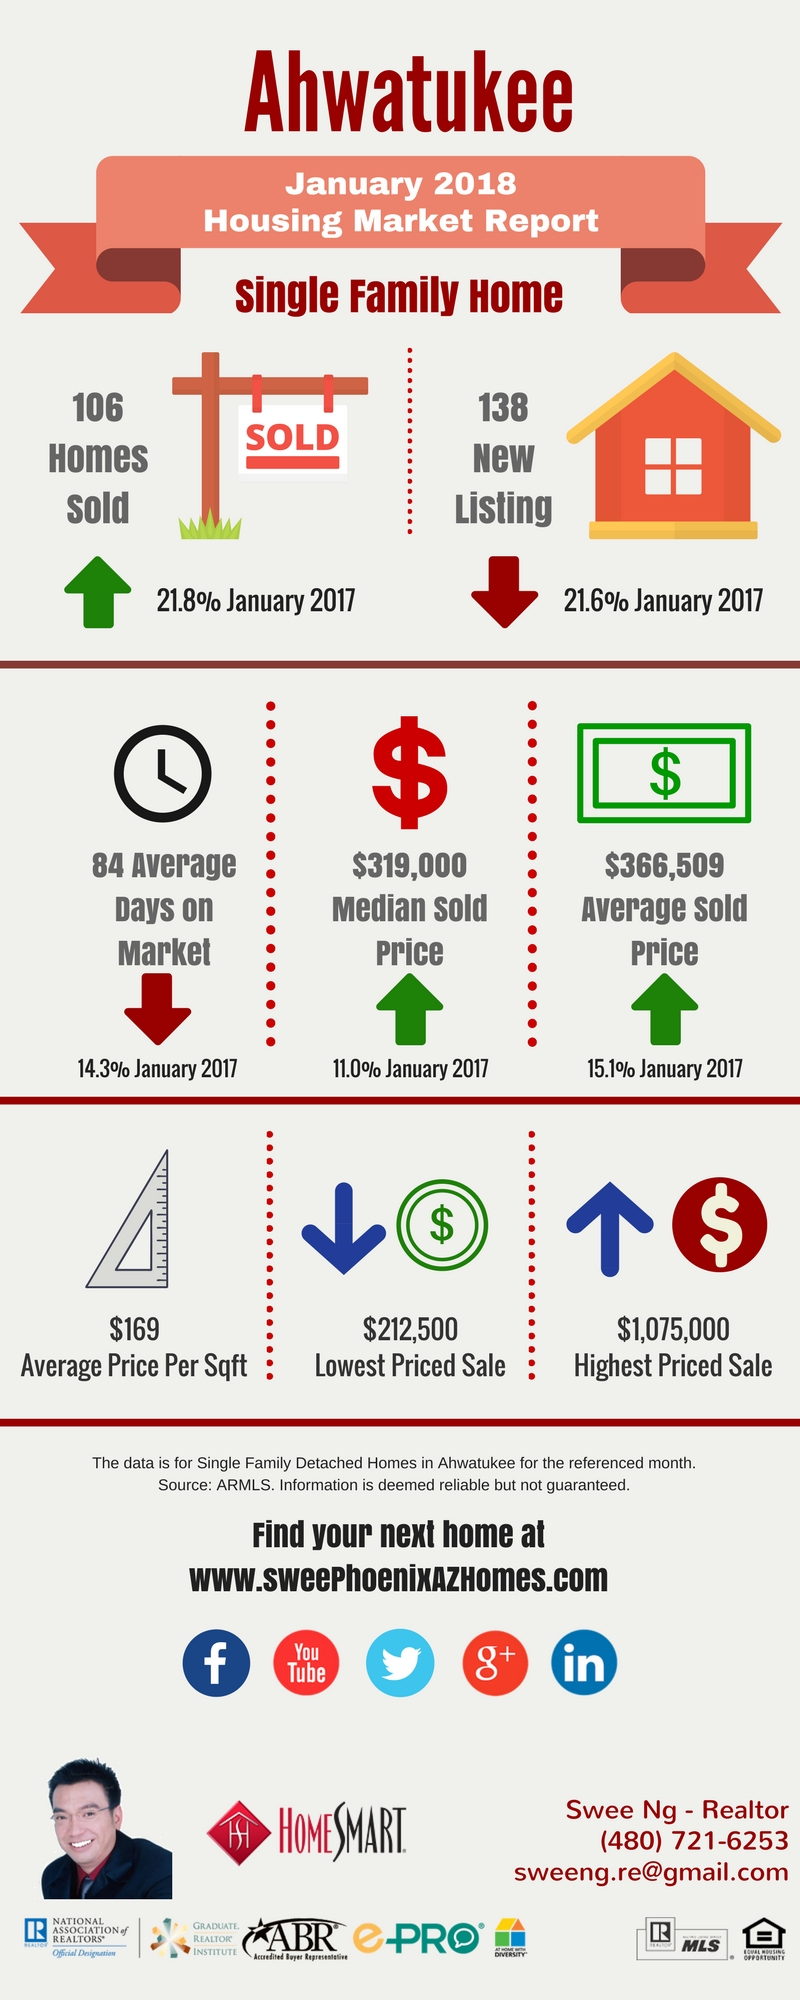 Ahwatukee Housing Market Trends Report January 2018, House Value, Real Estate and Statistic by Swee Ng